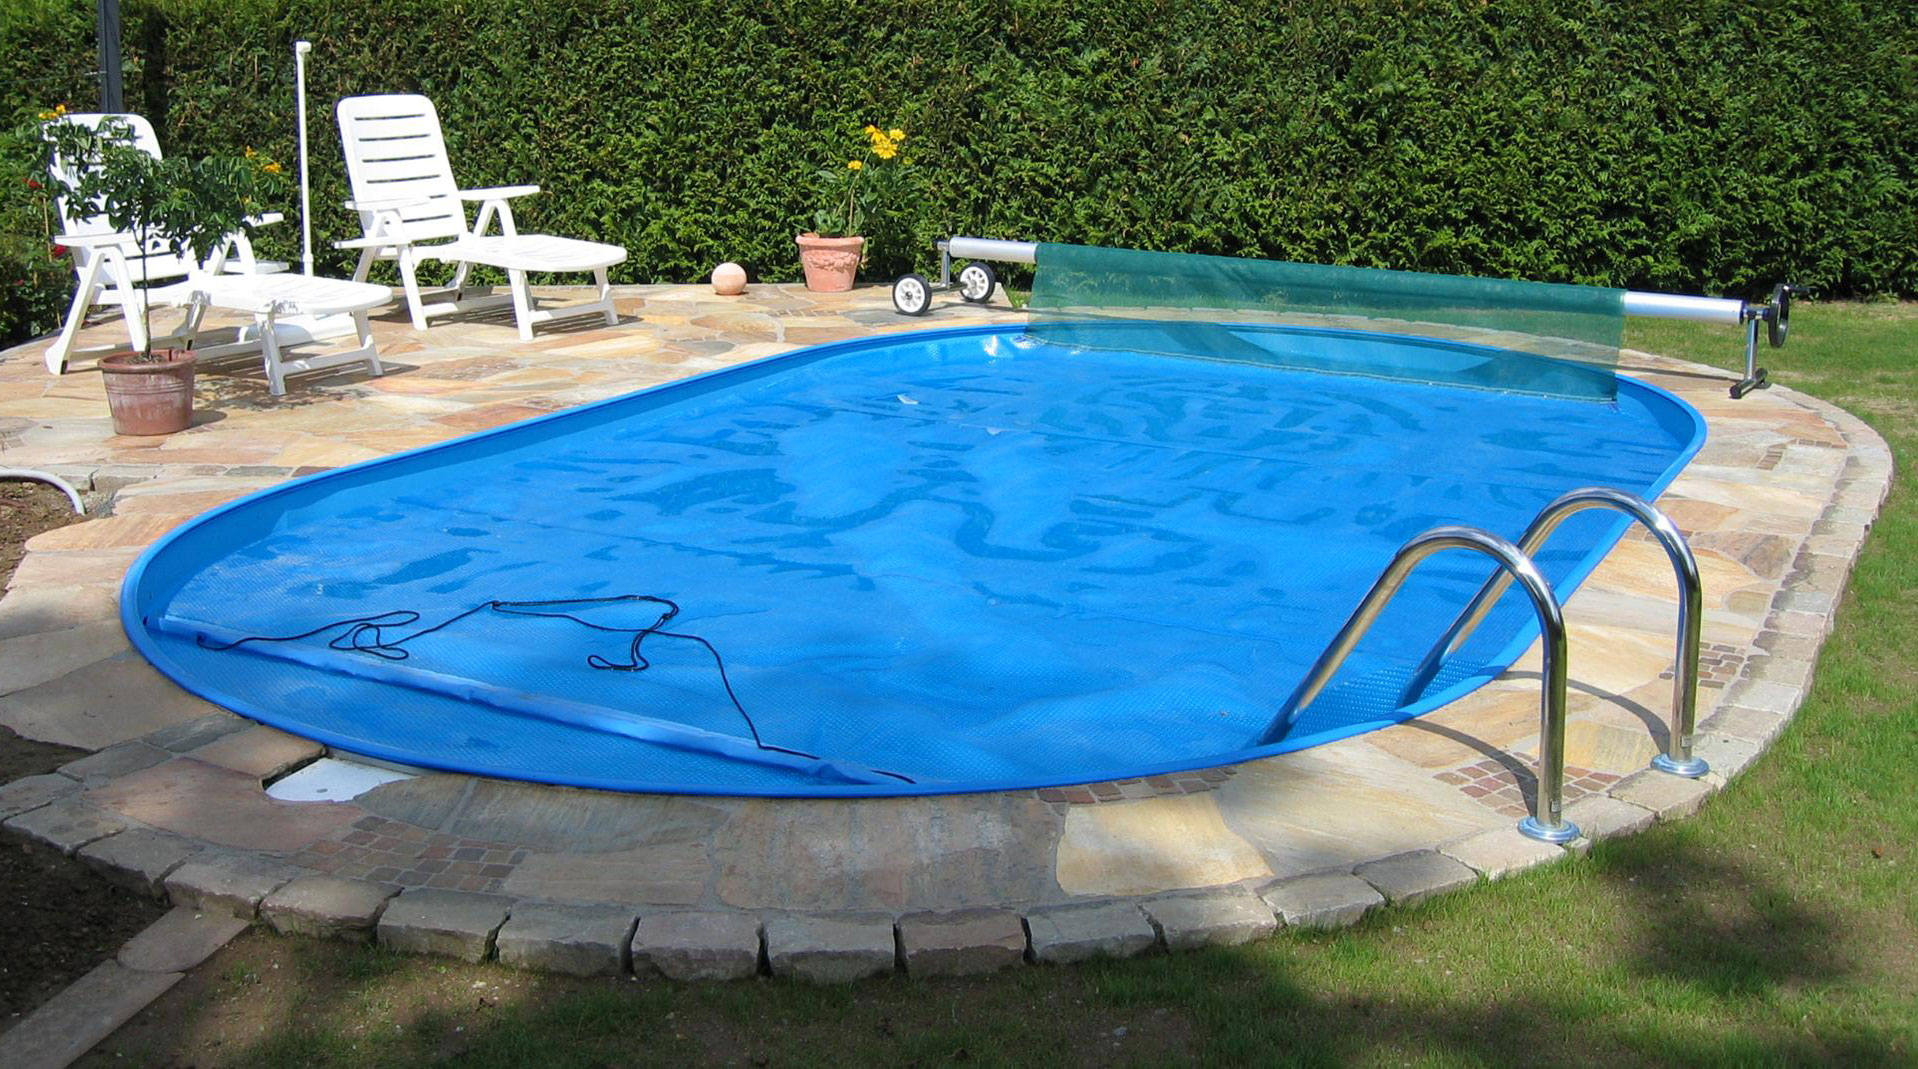 Pool schwimmbecken trend oval mit sandfilter 5 00x3 00x1 for Stahlwandpool pool